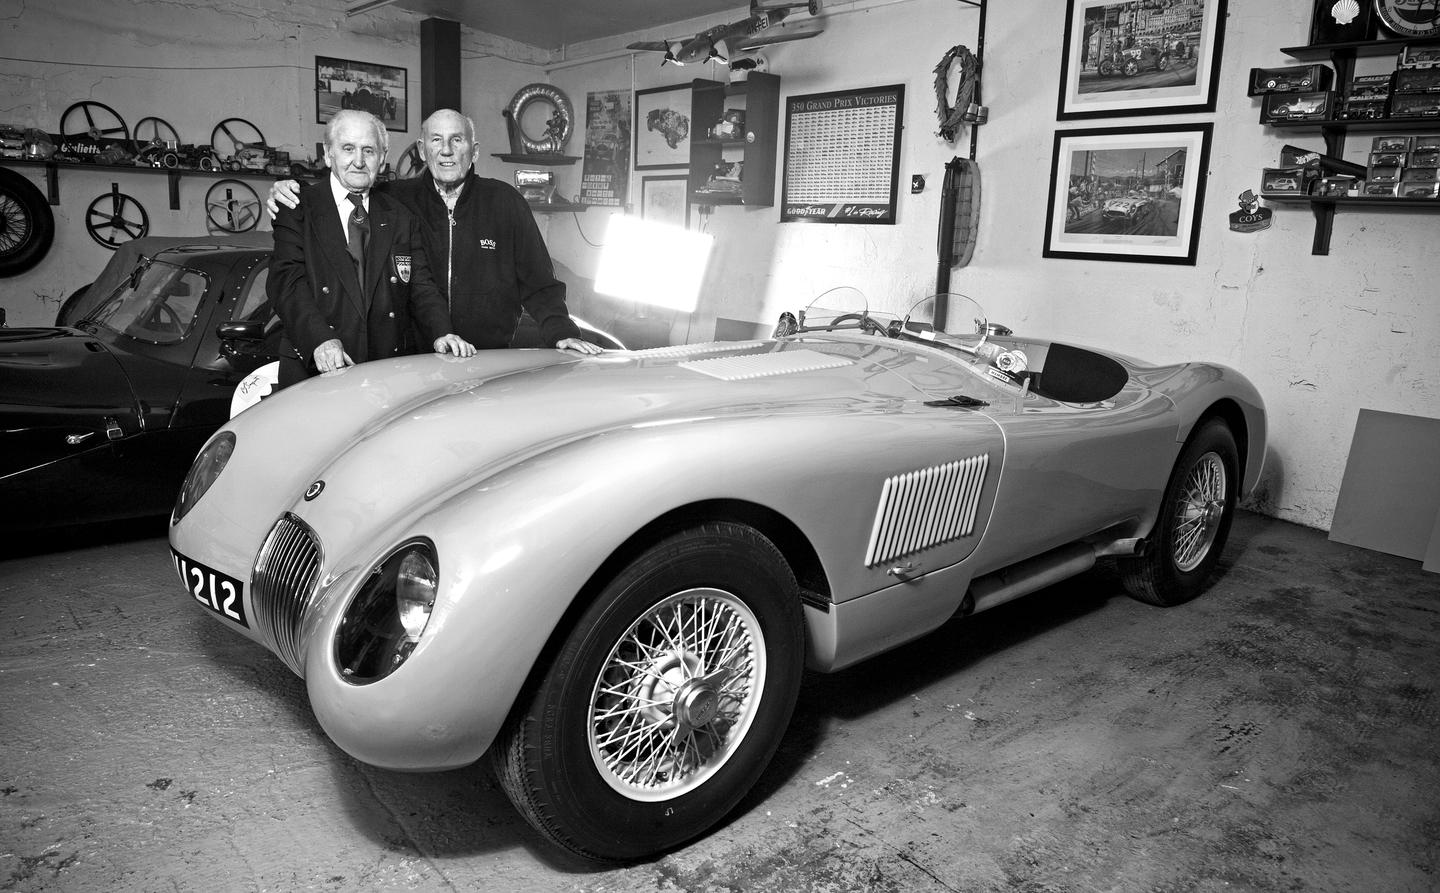 The first competitive outing for the disc-brake was on a Jaguar C-type in the 1952 Mille Miglia with Sir Stirling Moss driving and Norman Dewis, then Jaguar's chief development engineer, navigating